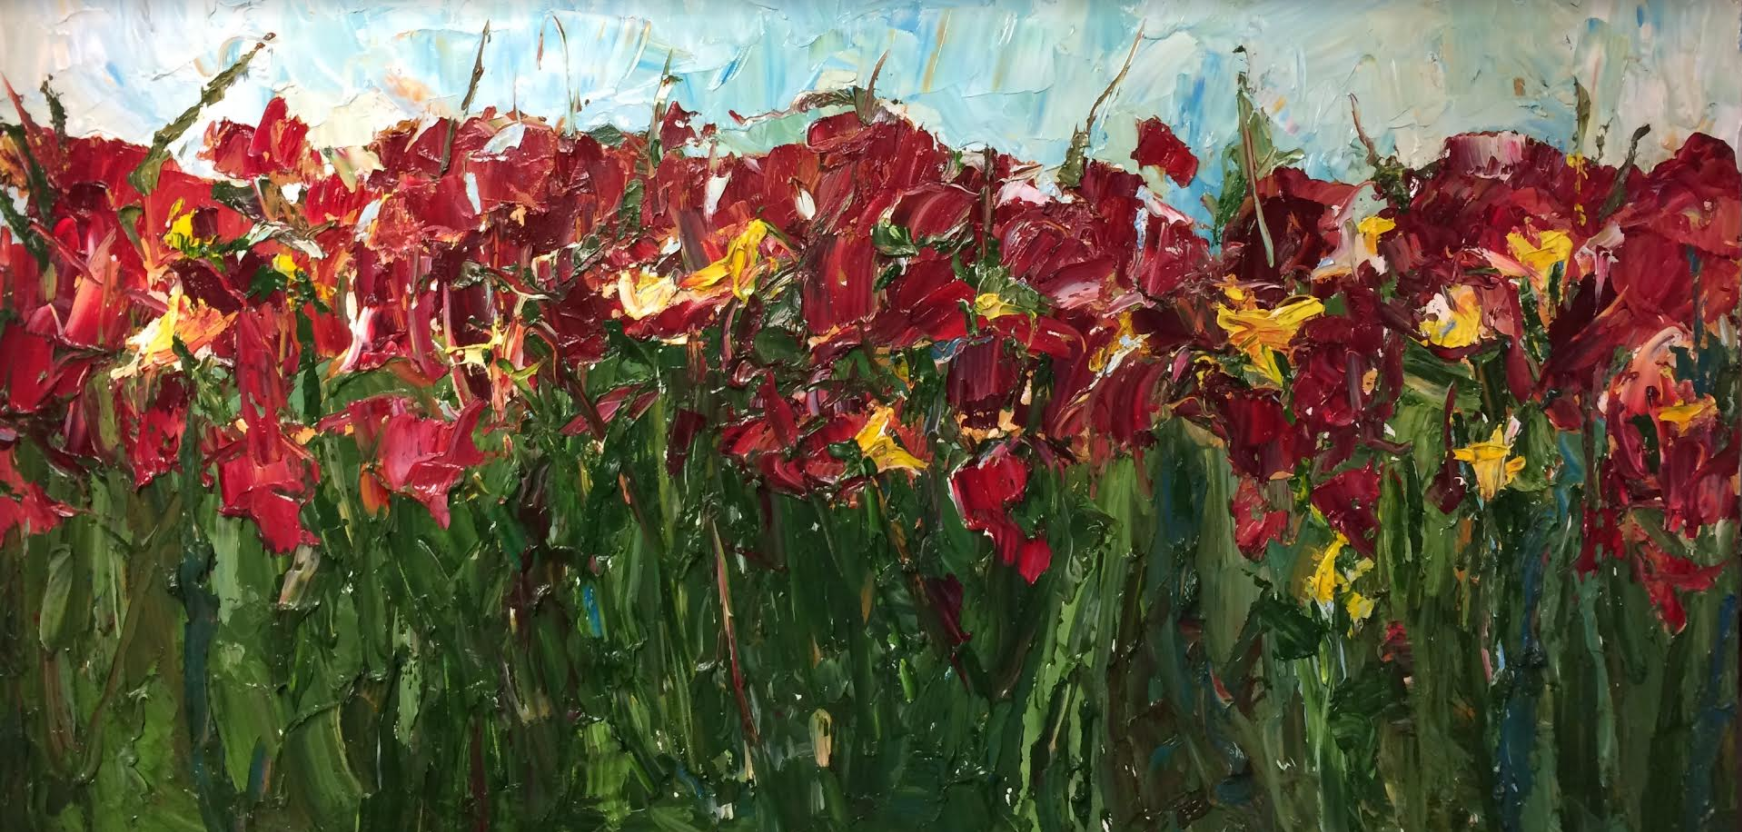 Red and Yellow Flowers in a Field of Green, Commission 48x24in Oil on Canvas  The yellow flowers were added in as a request of the client to match their decor. I am impressed by their eye for color and interior design. I greatly value the dynamic between the client and artist in the commission process to bring out a final painting that genuinely speaks to both the client and the artist.